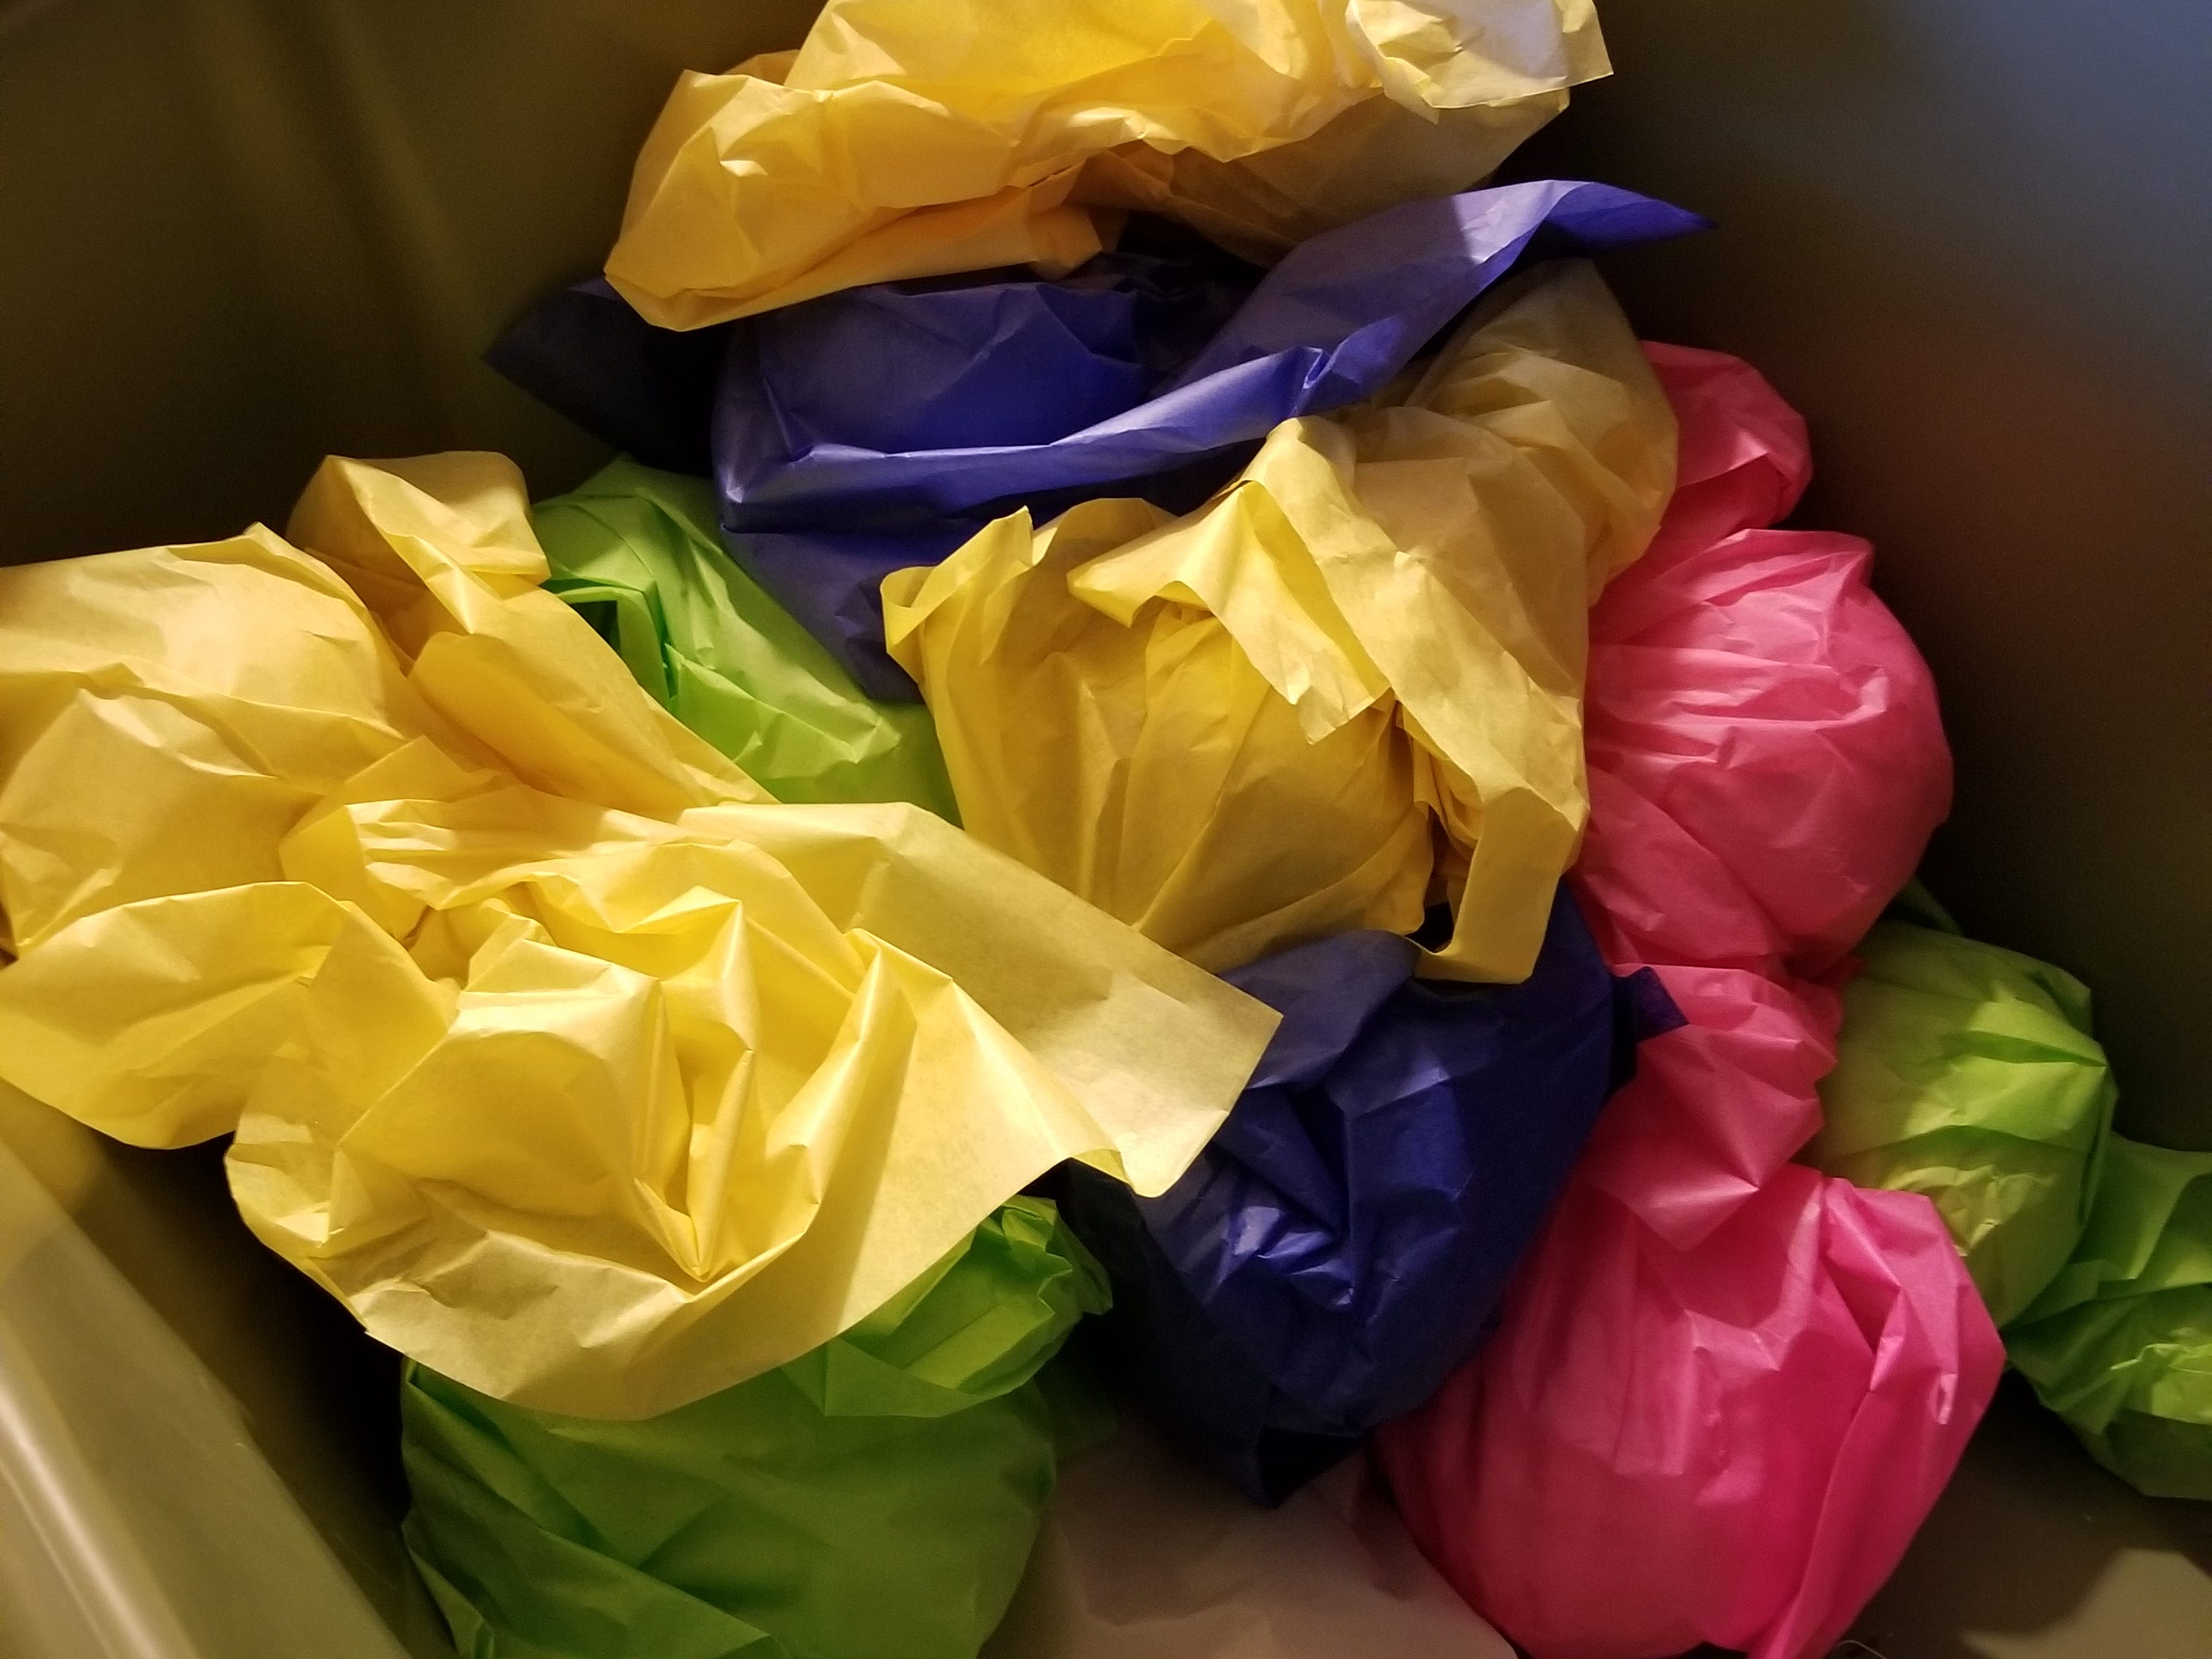 If you have ornaments that are larger, purchase some tissue paper from your local dollar store.  Wrap each ornament in the tissue and tuck  into your packing bin.